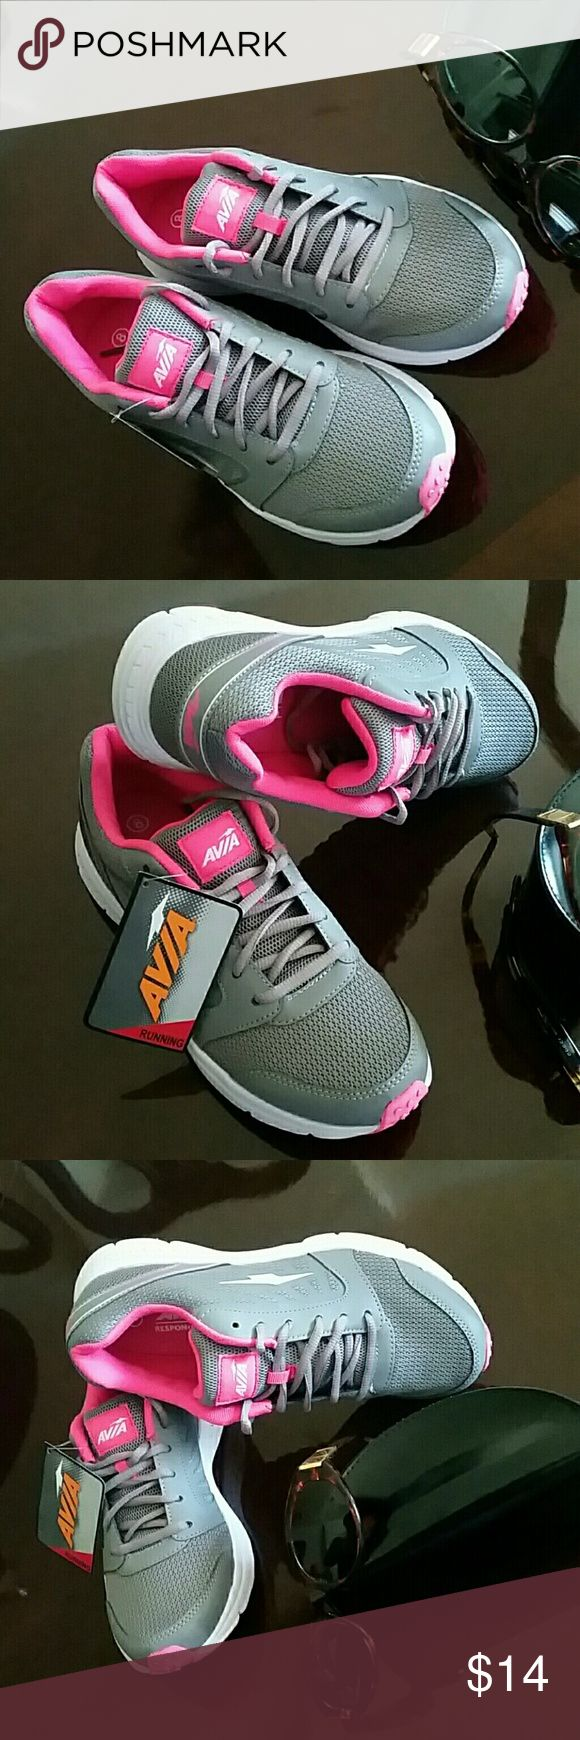 RUNNING GYM SNEAKERS AVIA NEW Size 9 Brand new AVIA Running Gym Sneakers. Size 9  FREE GIFT INCLUDED AVIA Shoes Sneakers